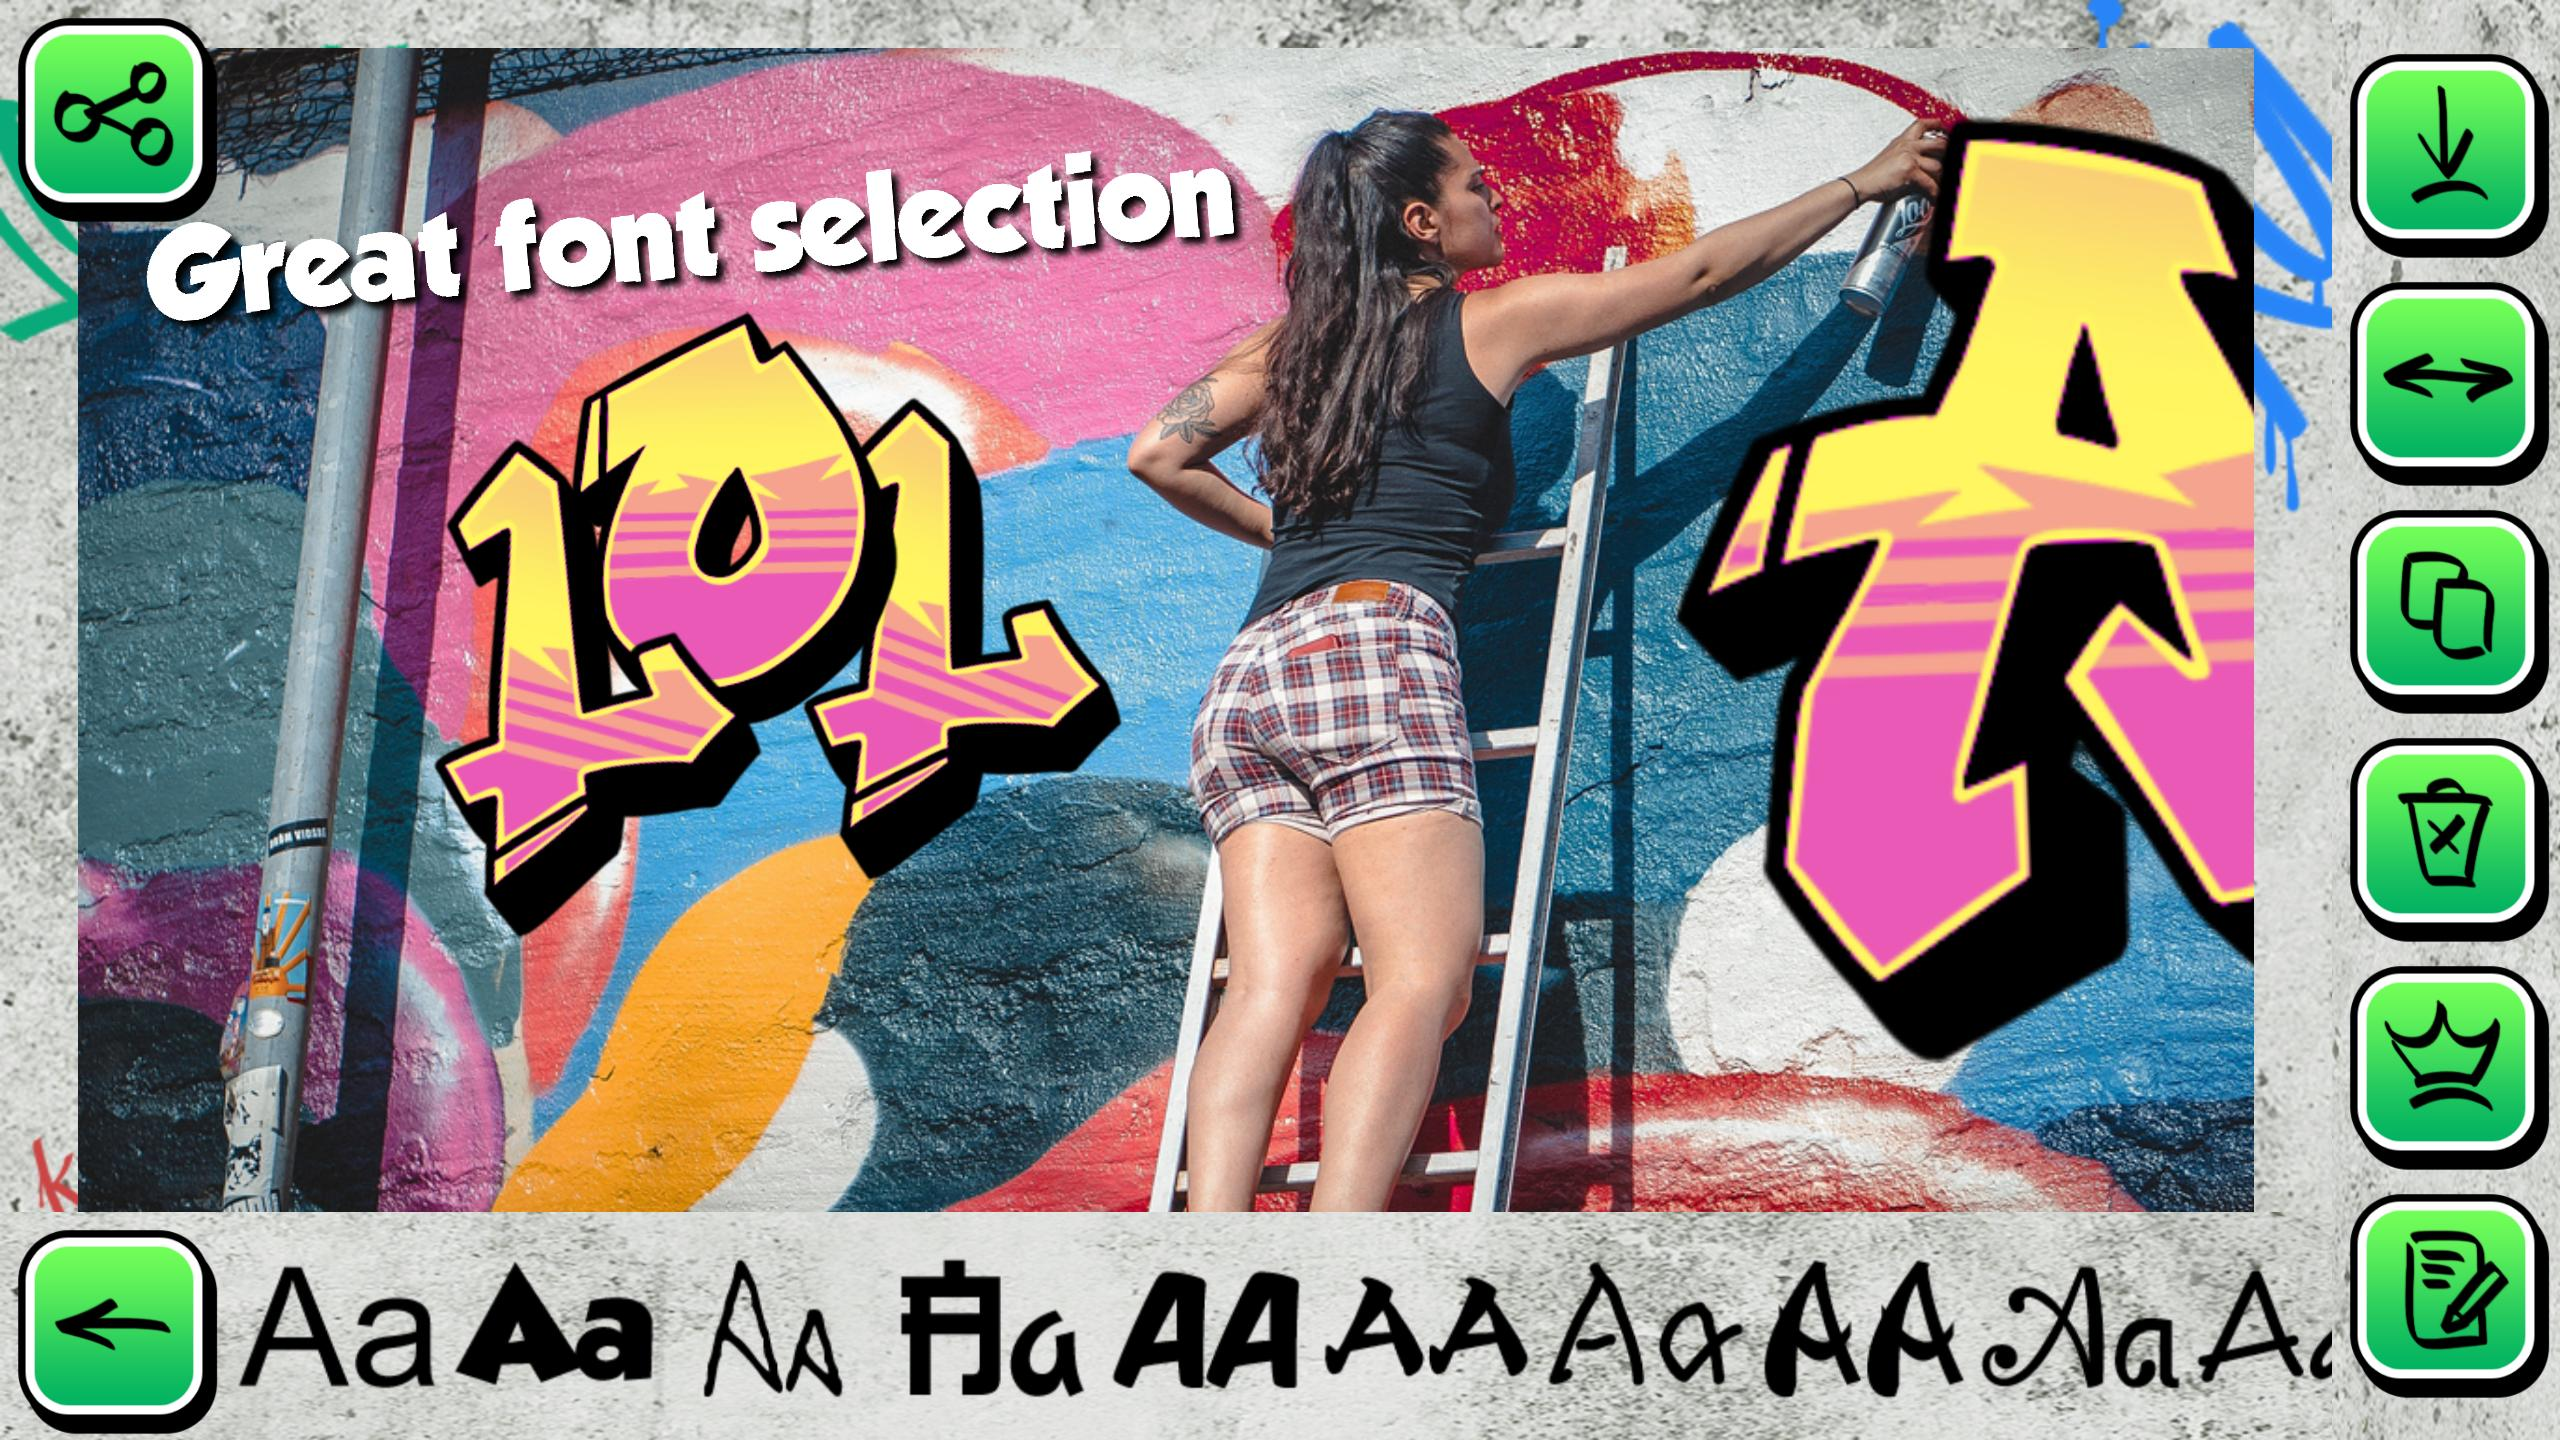 Graffiti Creator on Photo Text for Android - APK Download